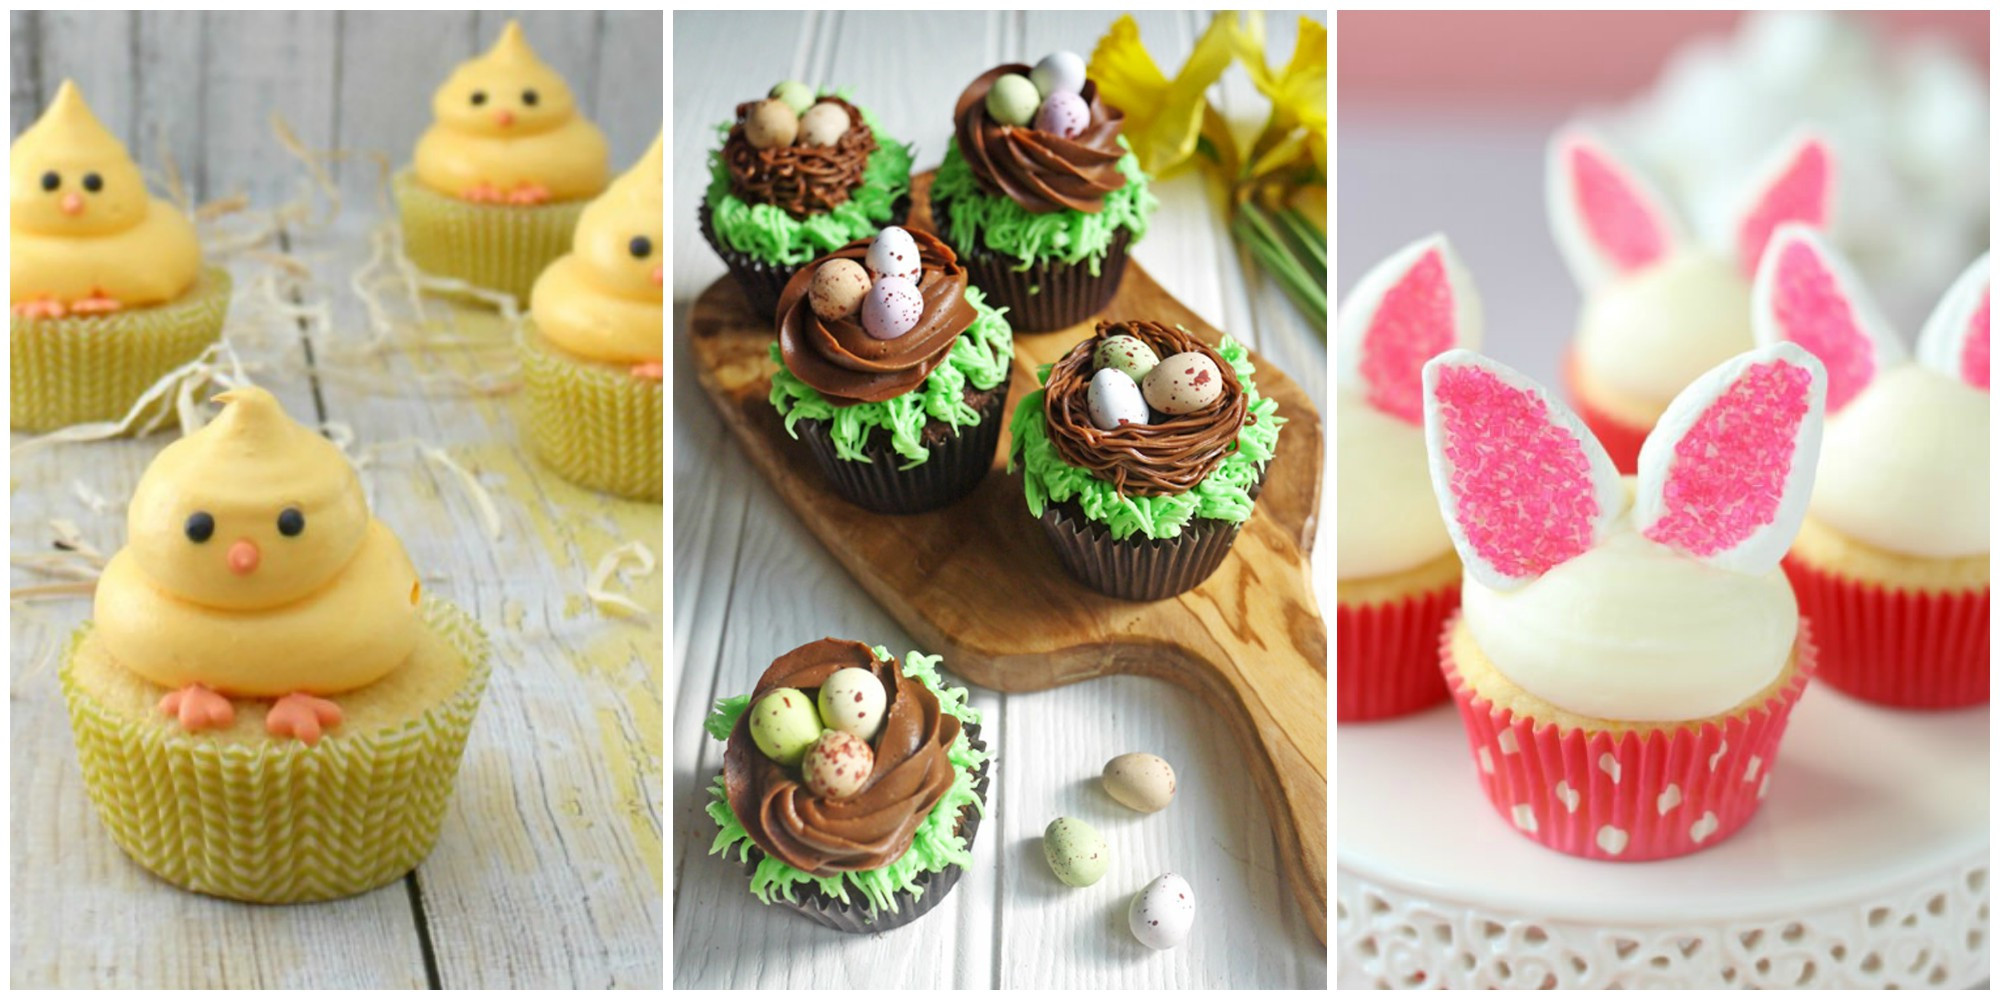 Easy Easter Cupcakes  21 Cute Easter Cupcakes Easy Ideas for Easter Cupcake Recipes